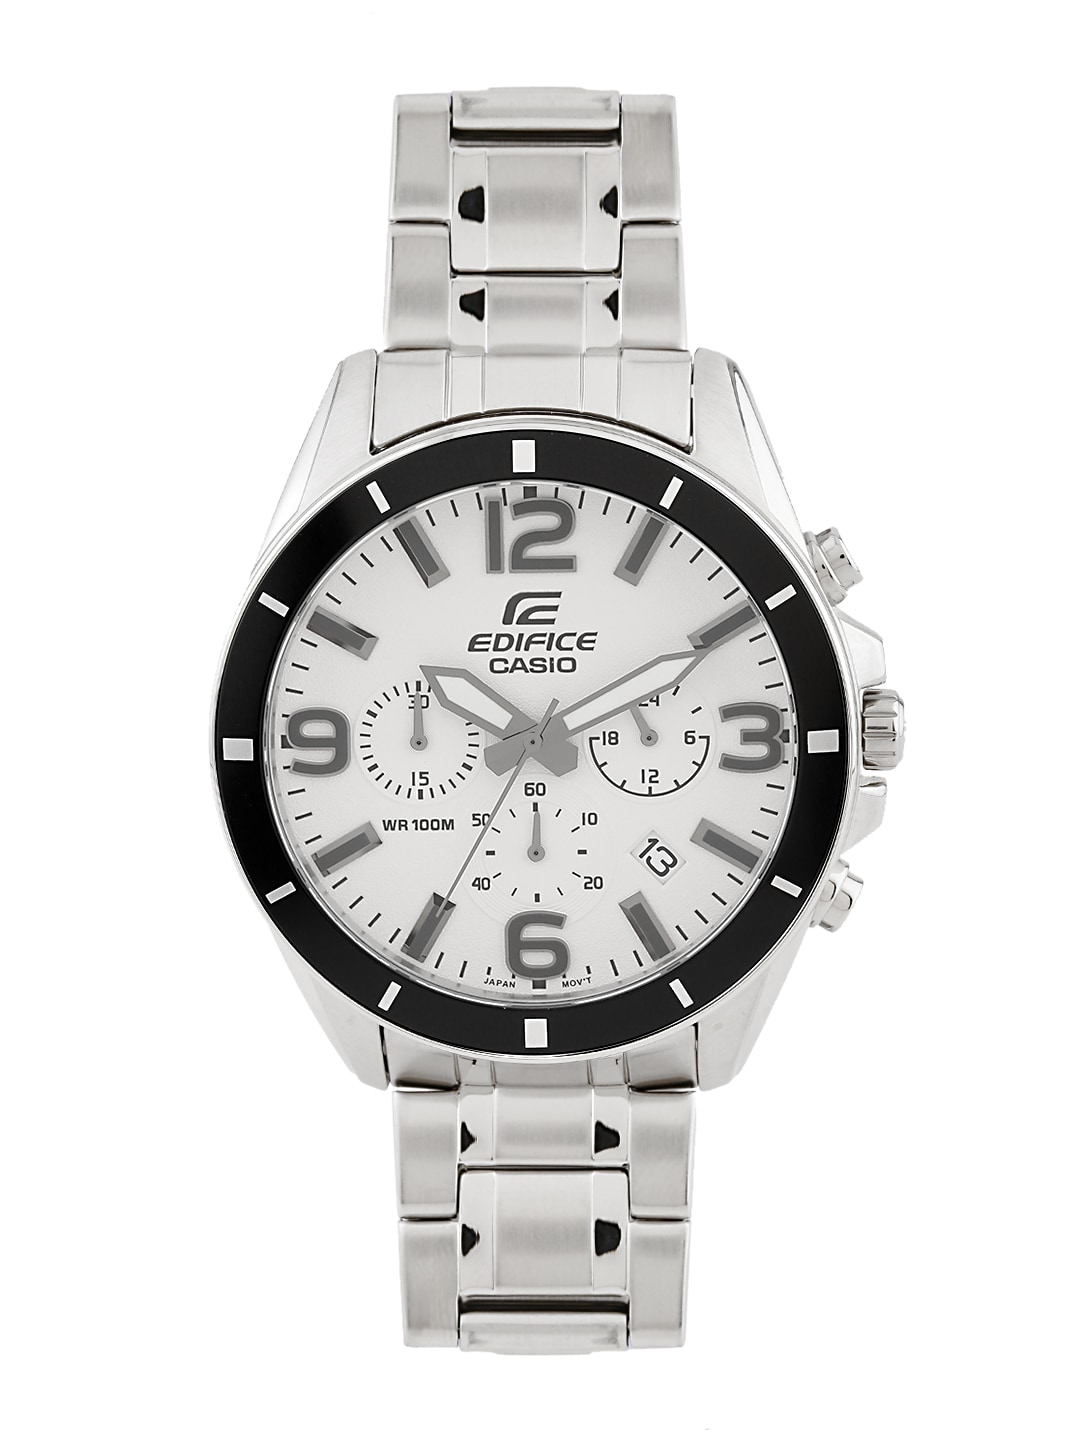 Casio Edifice Wr 100m Watches Buy 543d Stainless Silver Chrono Men Watch Online In India